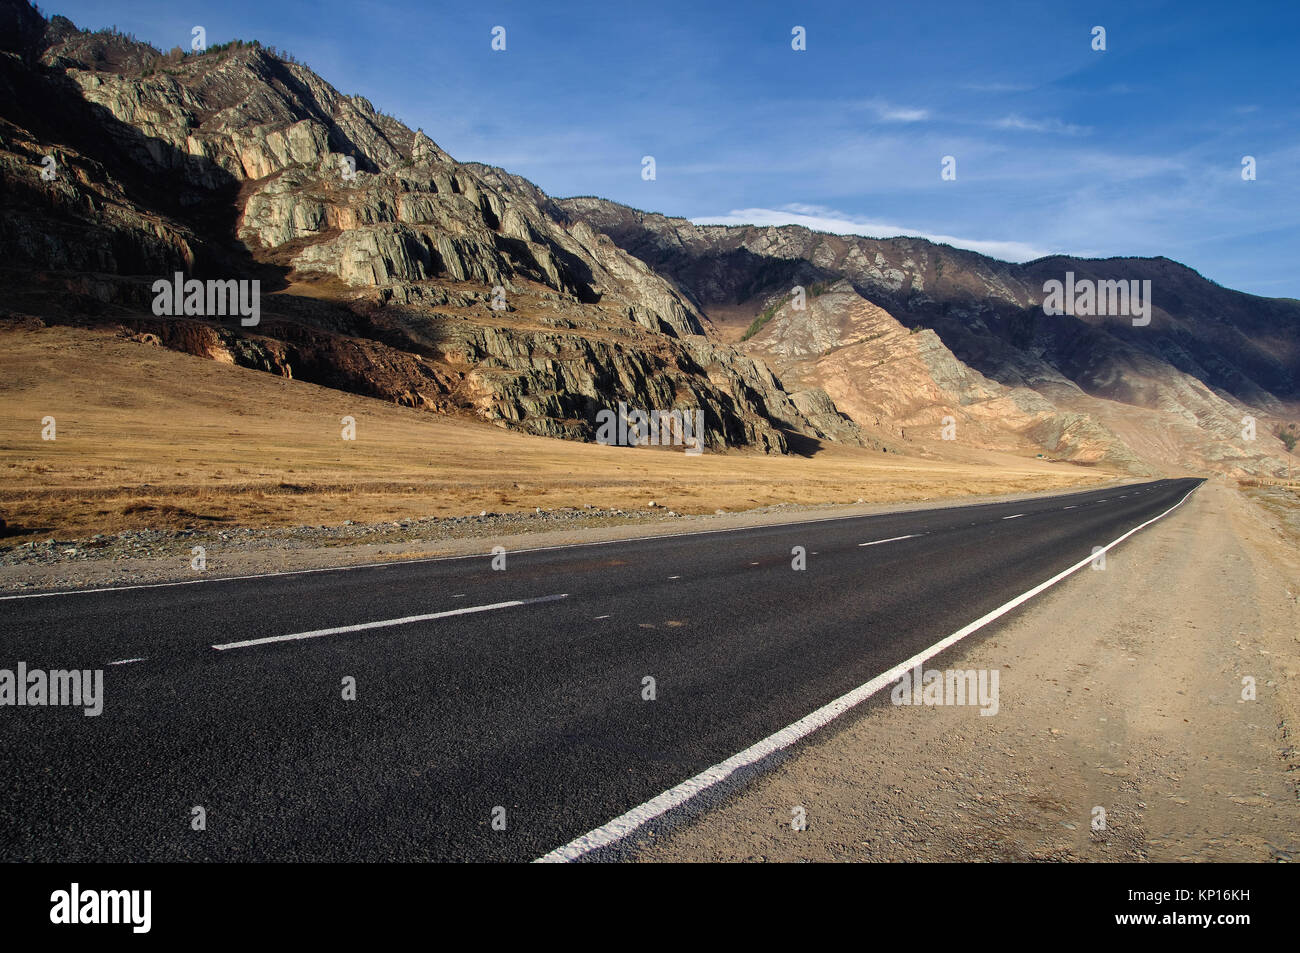 Road asphalt path on a desert wild mountain valley yellow dry grass at the background of the high ranges under a - Stock Image